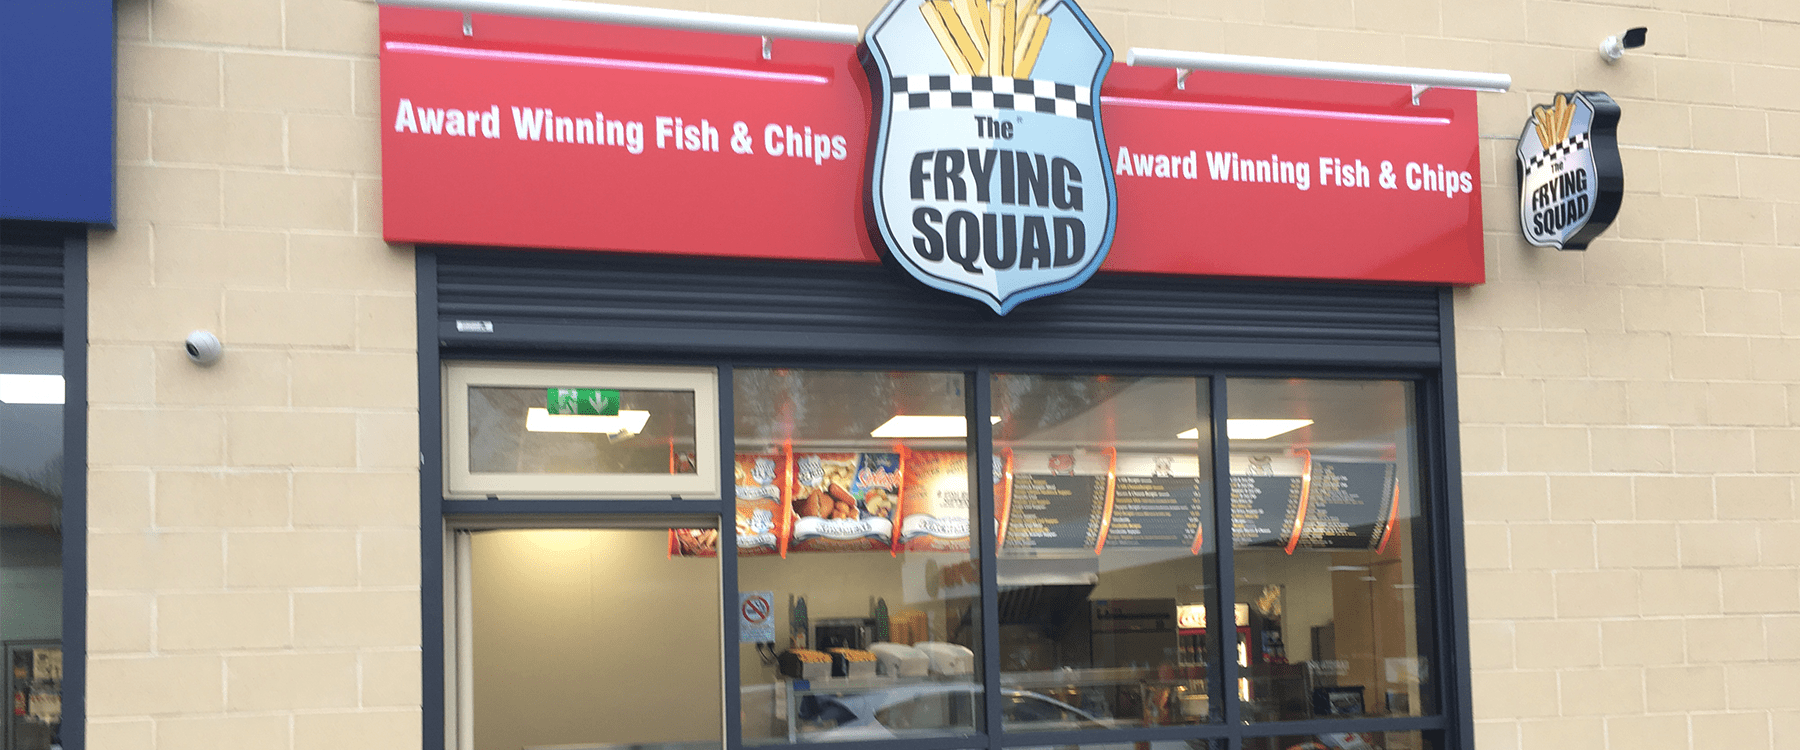 Frying Squad Image Second